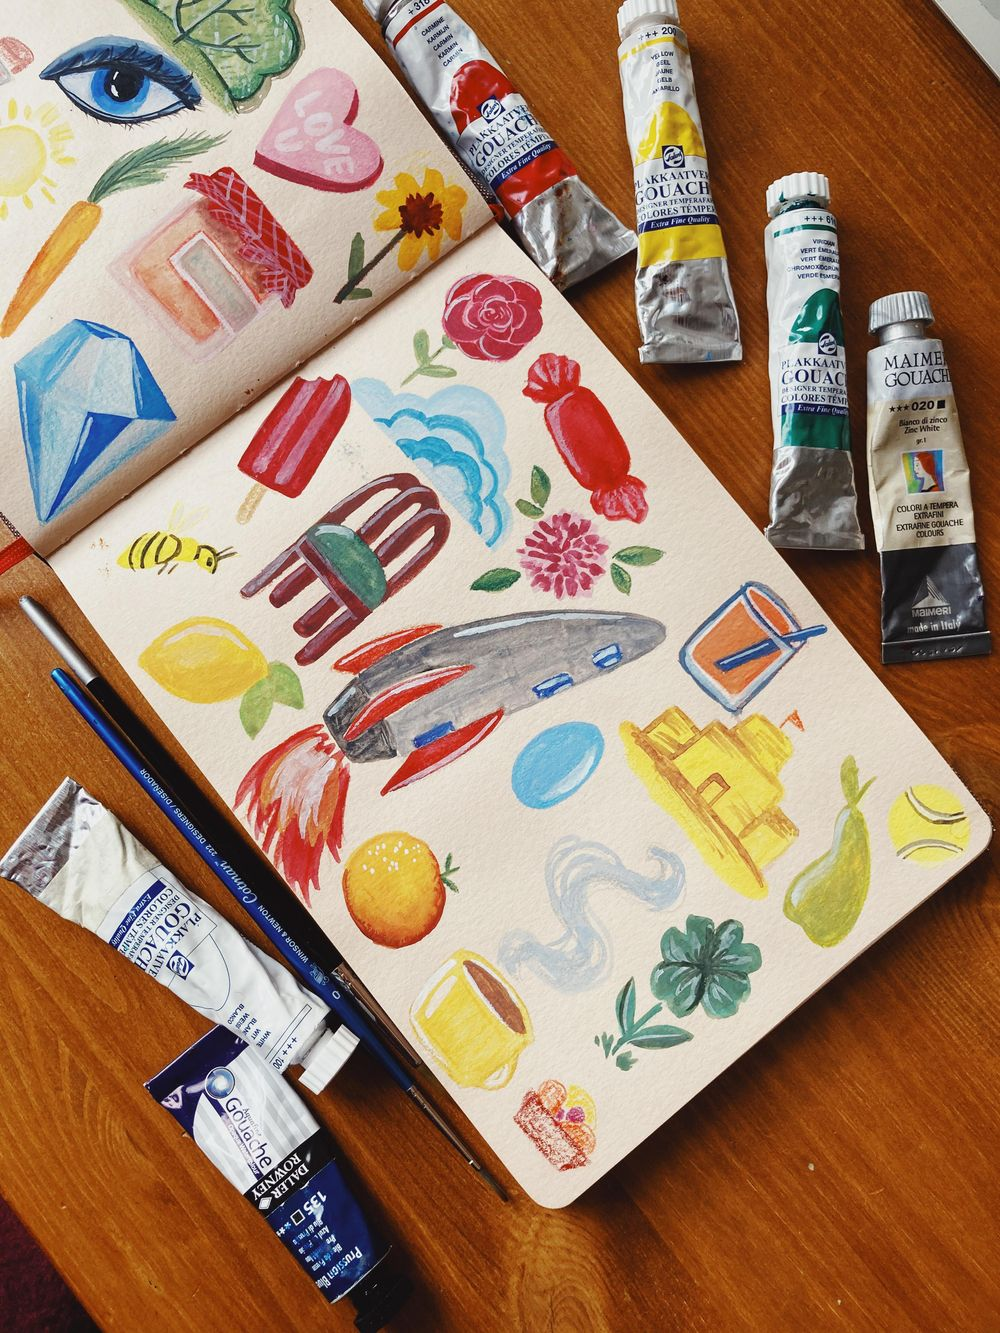 Gouache - Random objects - image 2 - student project